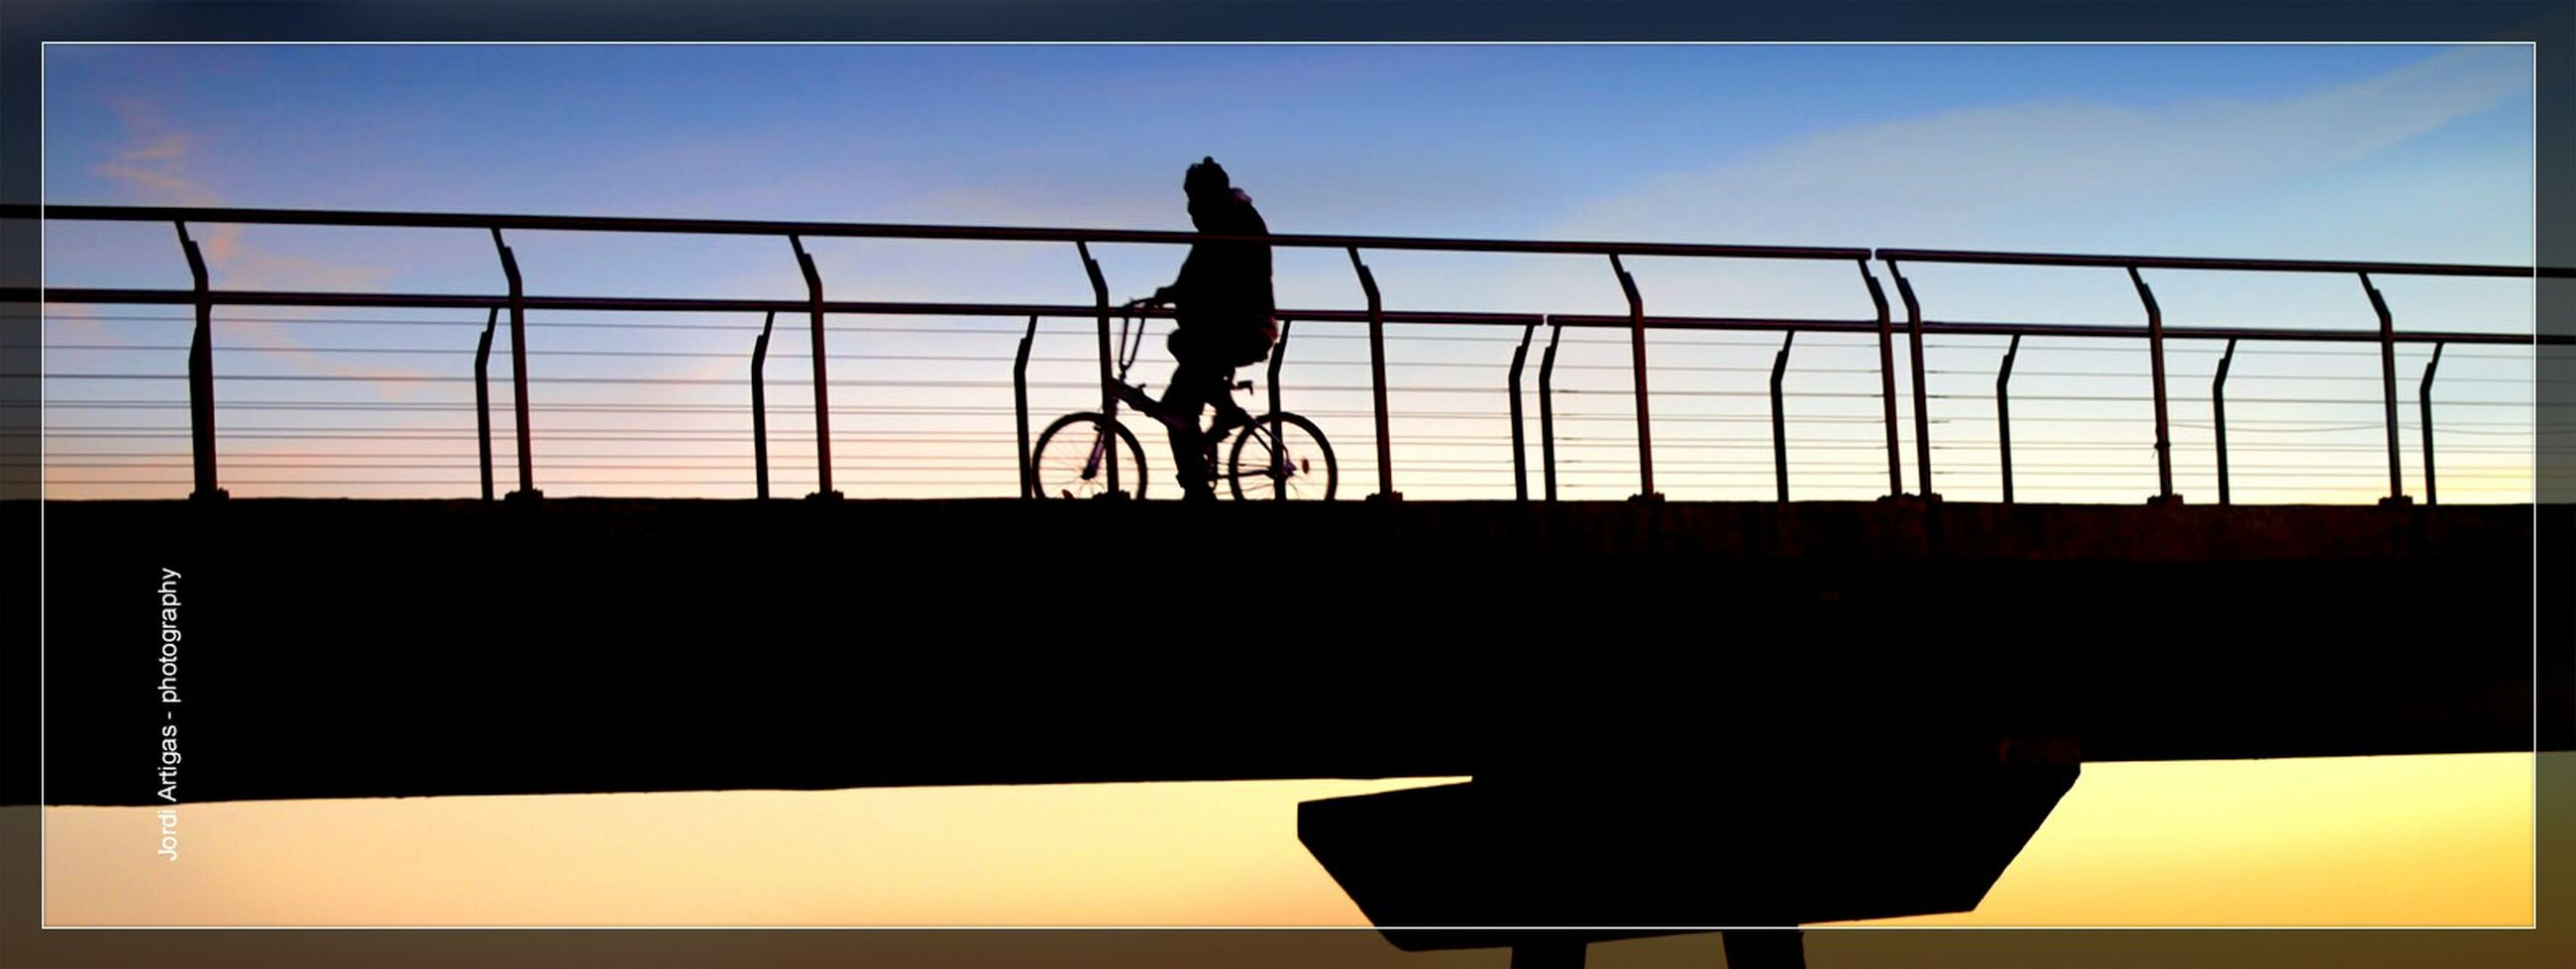 silhouette, full length, men, lifestyles, bicycle, leisure activity, low angle view, railing, clear sky, transportation, sky, built structure, side view, jumping, sport, riding, architecture, standing